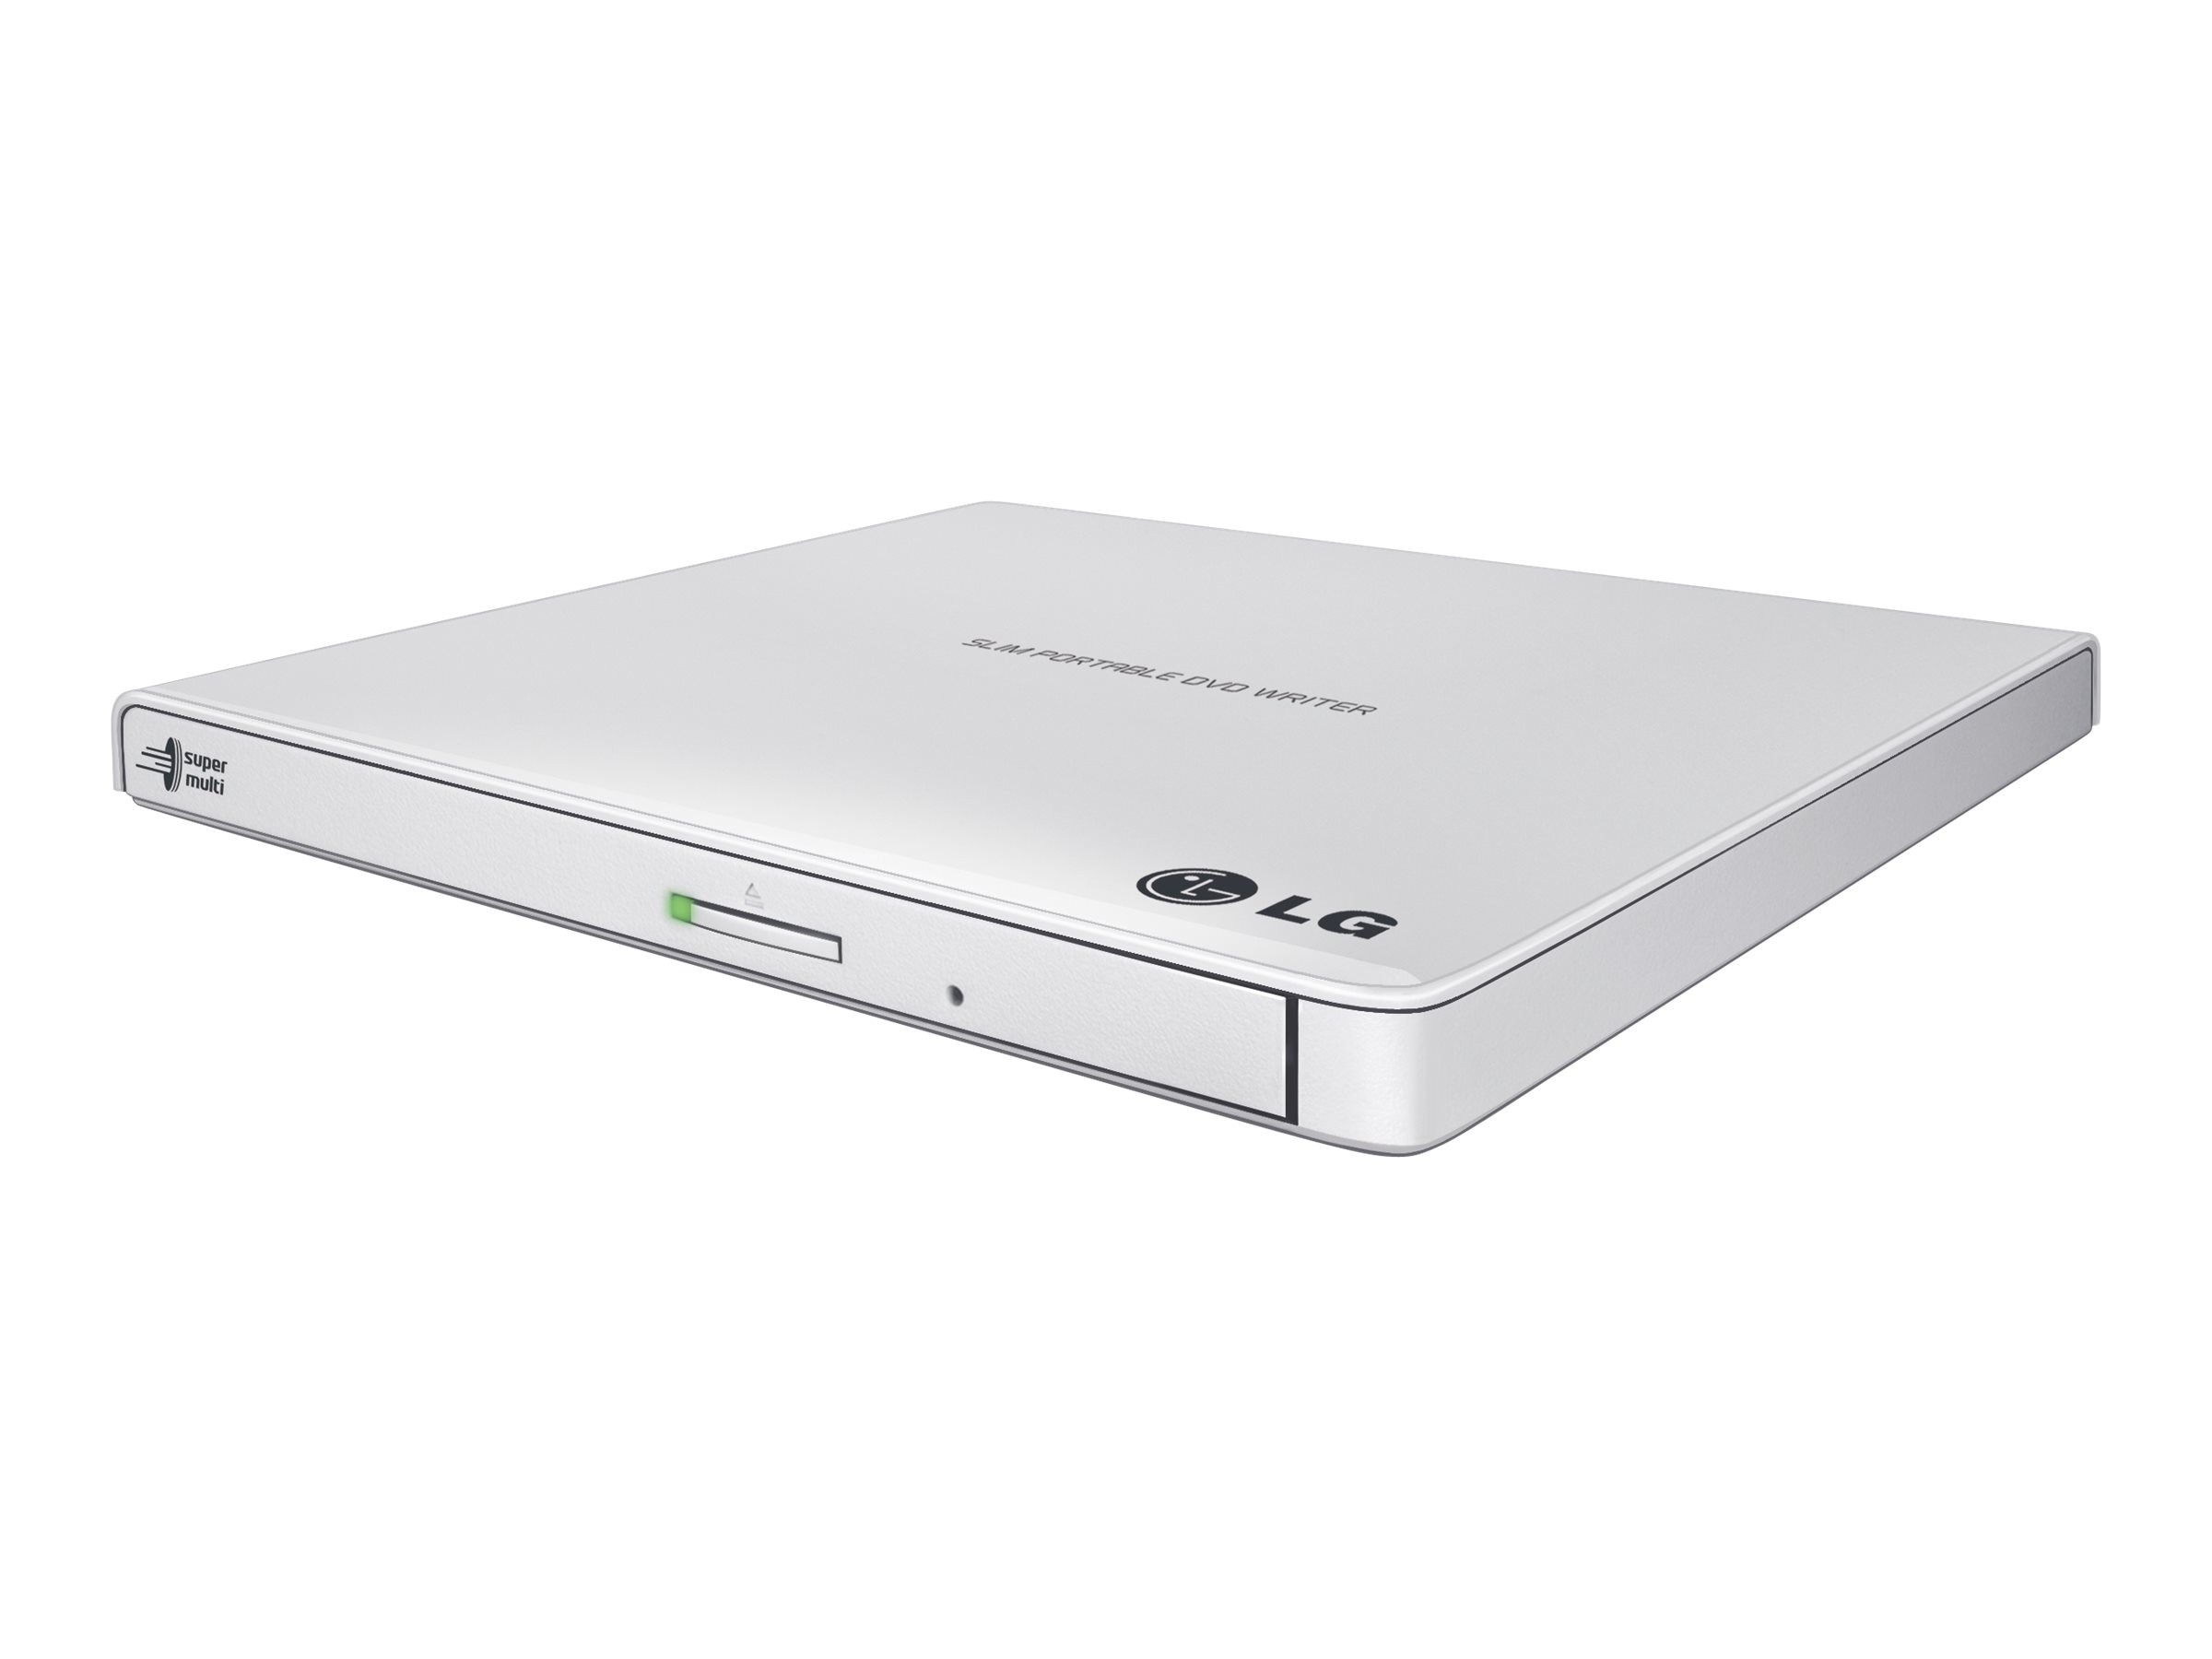 LG Ultra-Slim Portable DVD Burner & Drive w  M-DISC Support - White, GP65NW60